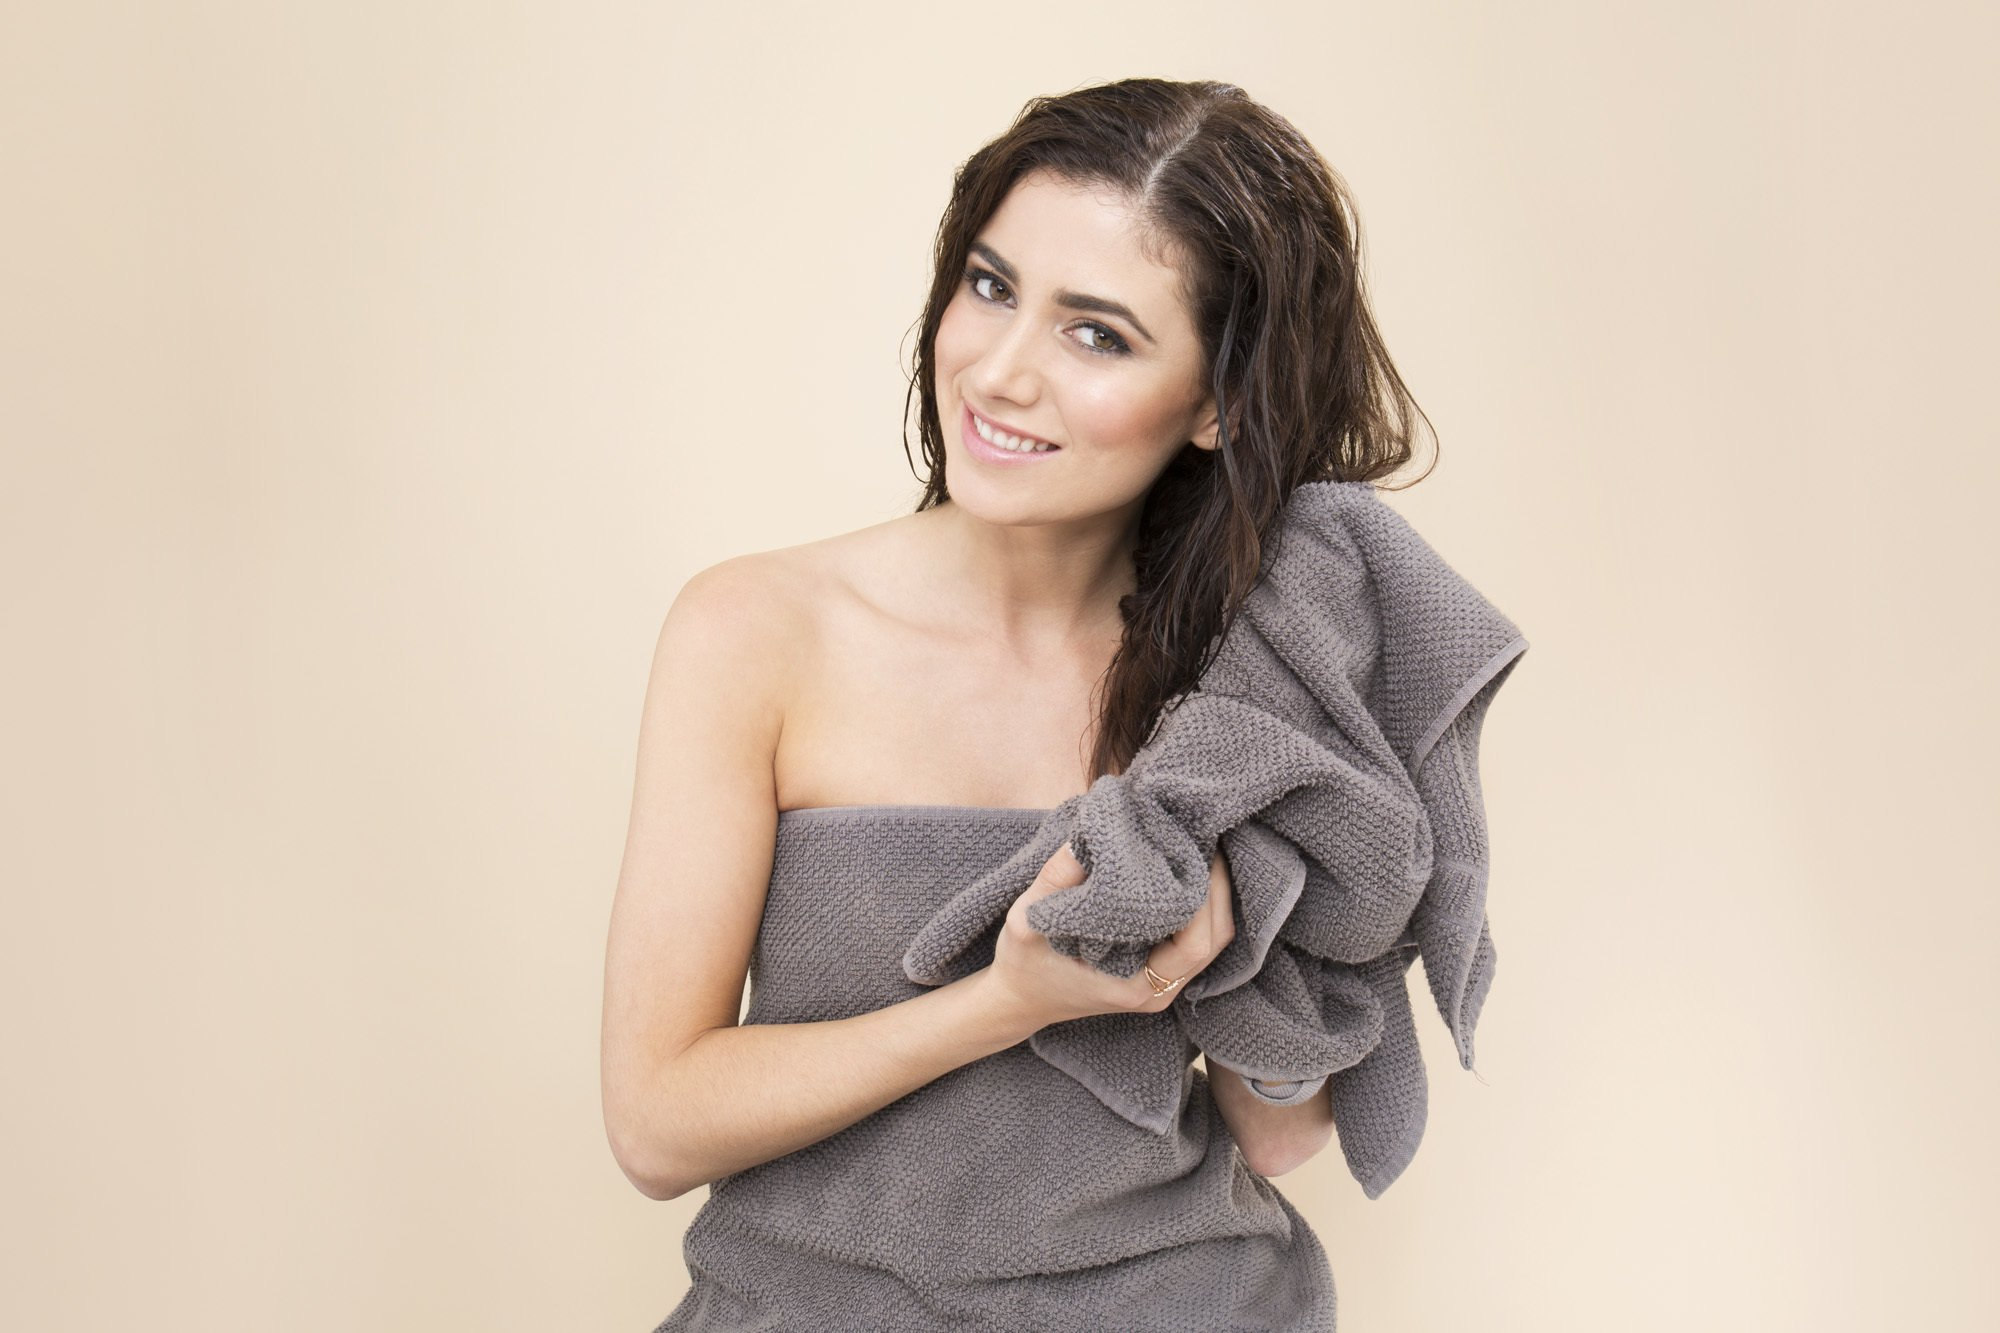 Deep conditioner: Brunette woman in a grey towel drying her damp hair